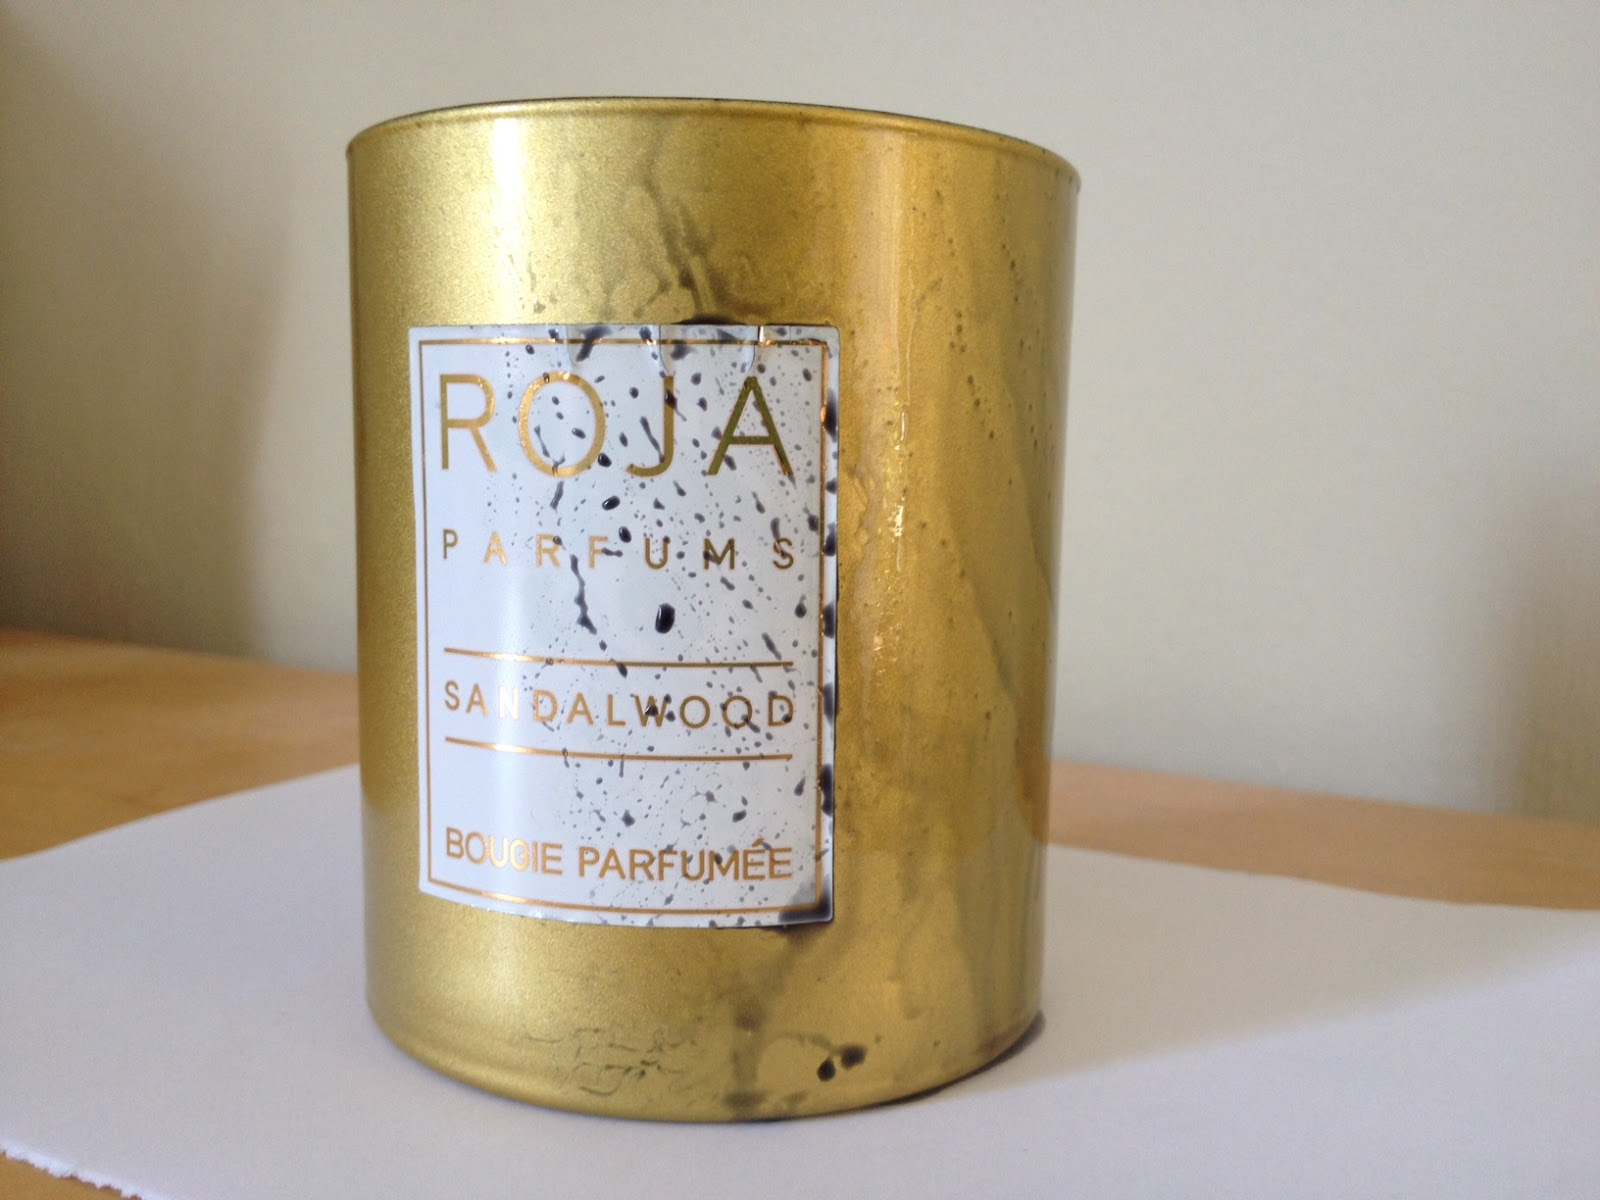 Lets Drip Together Roja Parfums Sandalwood Candle, And Thoughts On